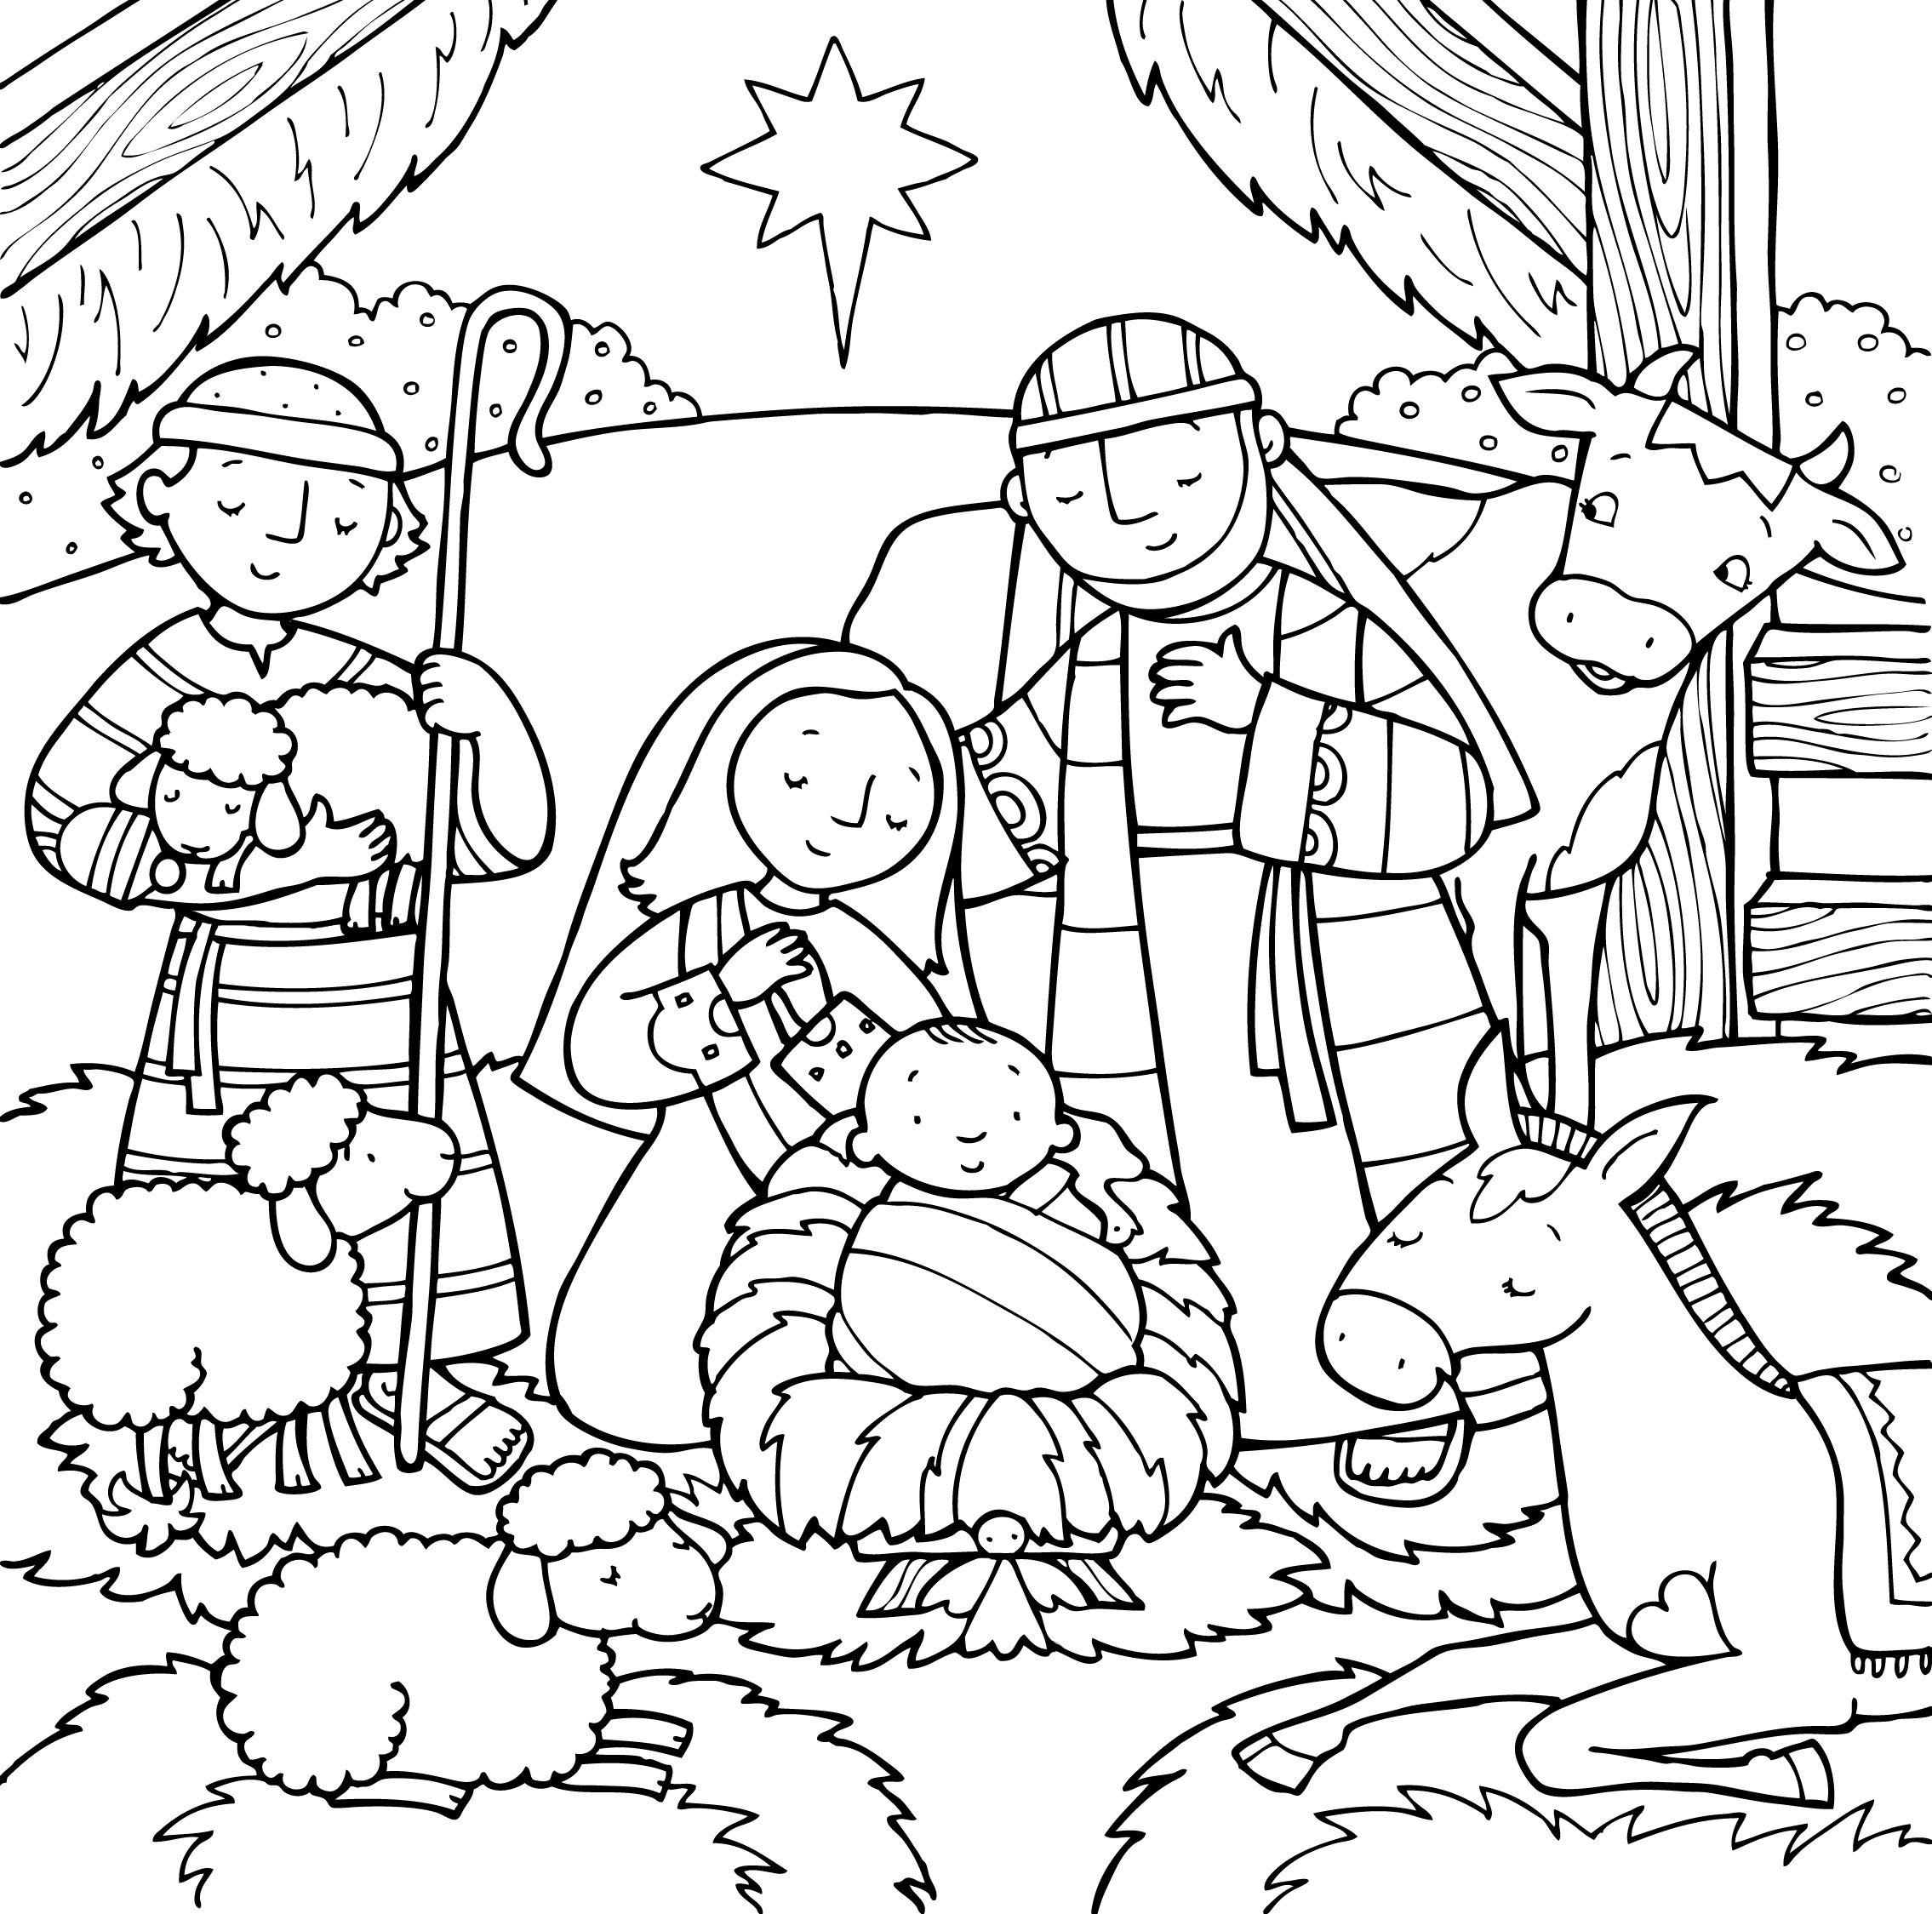 Birth Of Jesus Coloring Page Free Coloring Pages Download | Xsibe ...